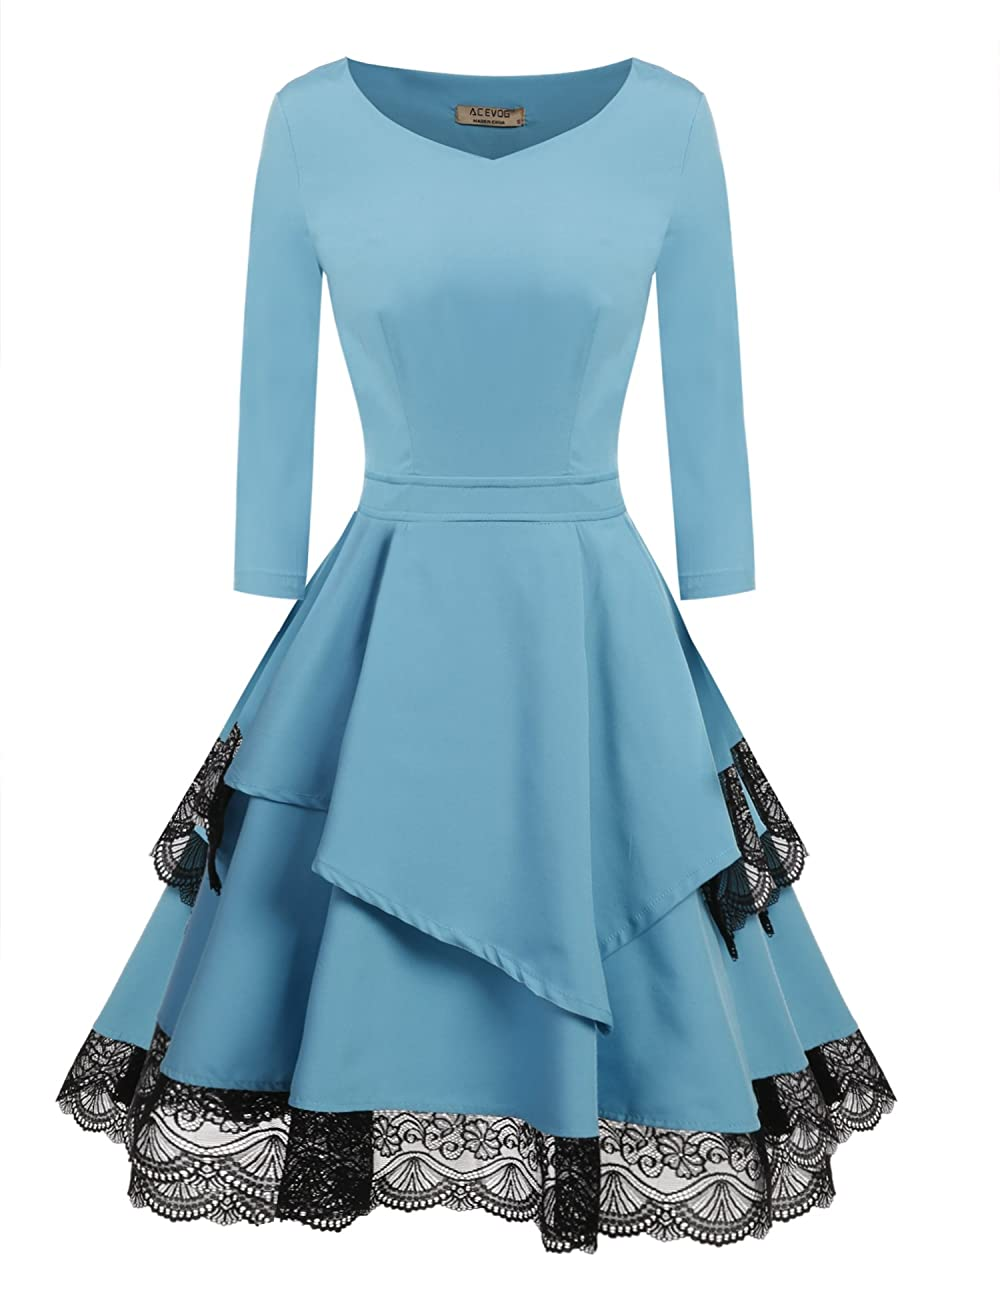 ACEVOG Women's 50s Vintage Floral Lace 3/4 Sleeve Pleated Cocktail Swing Dress 0